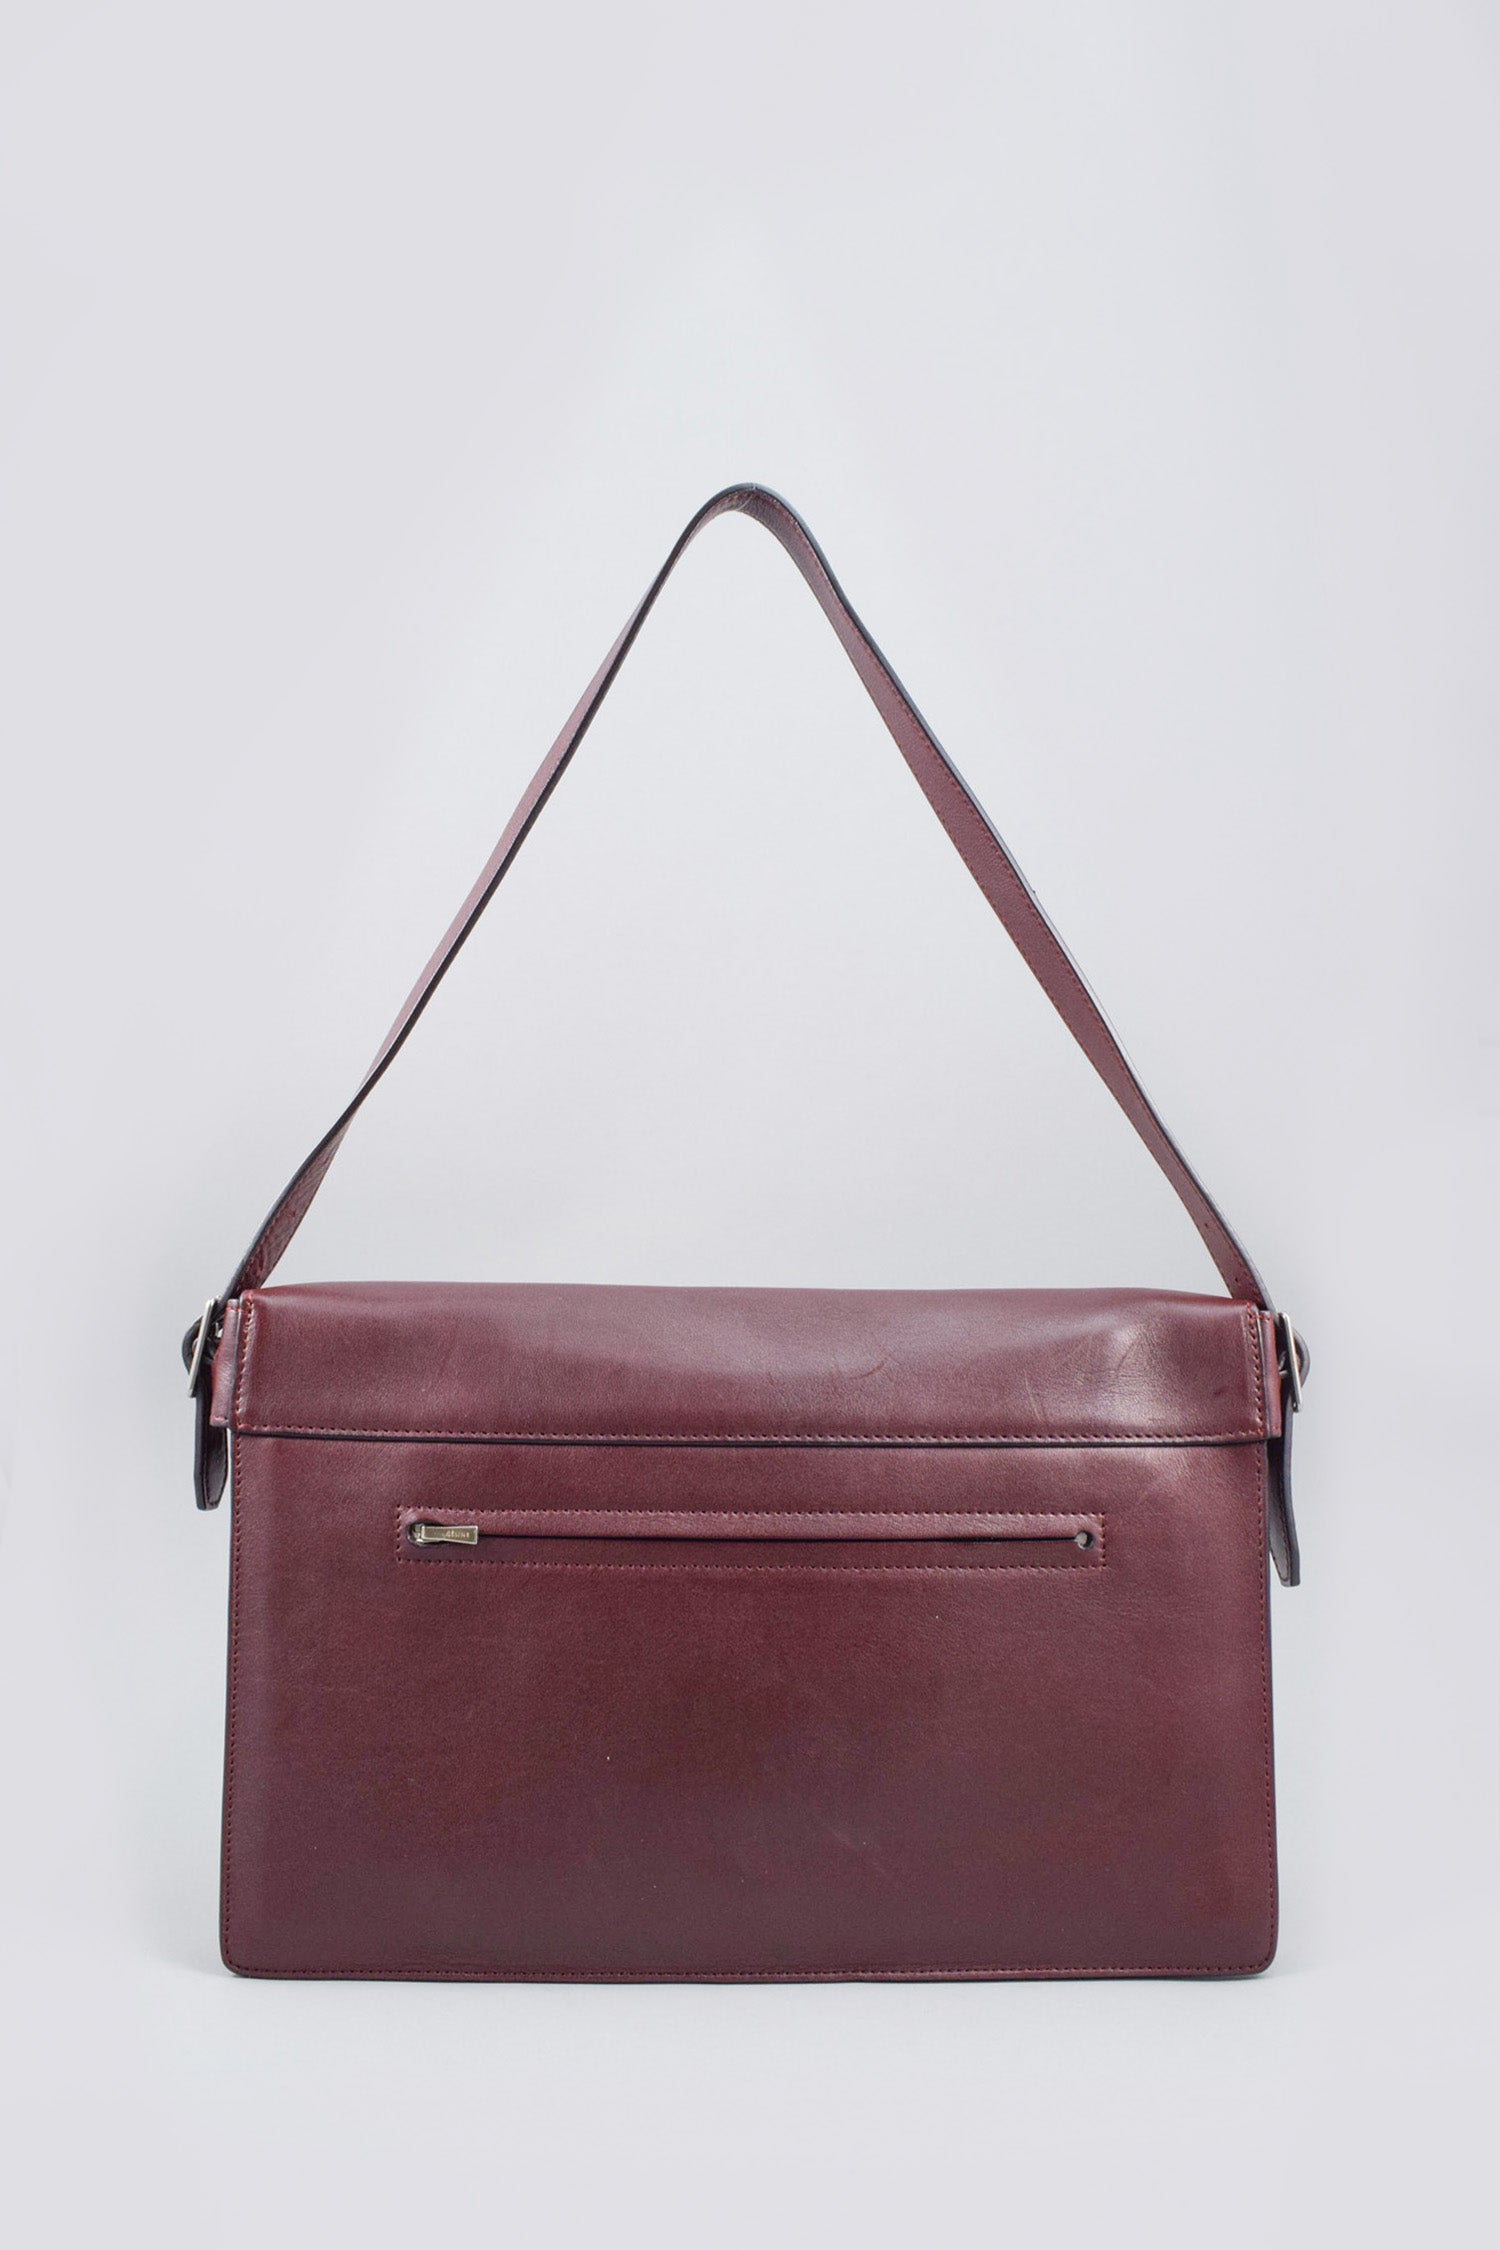 Celine Burgundy/Green Leather Medium Diamond Shoulder Bag